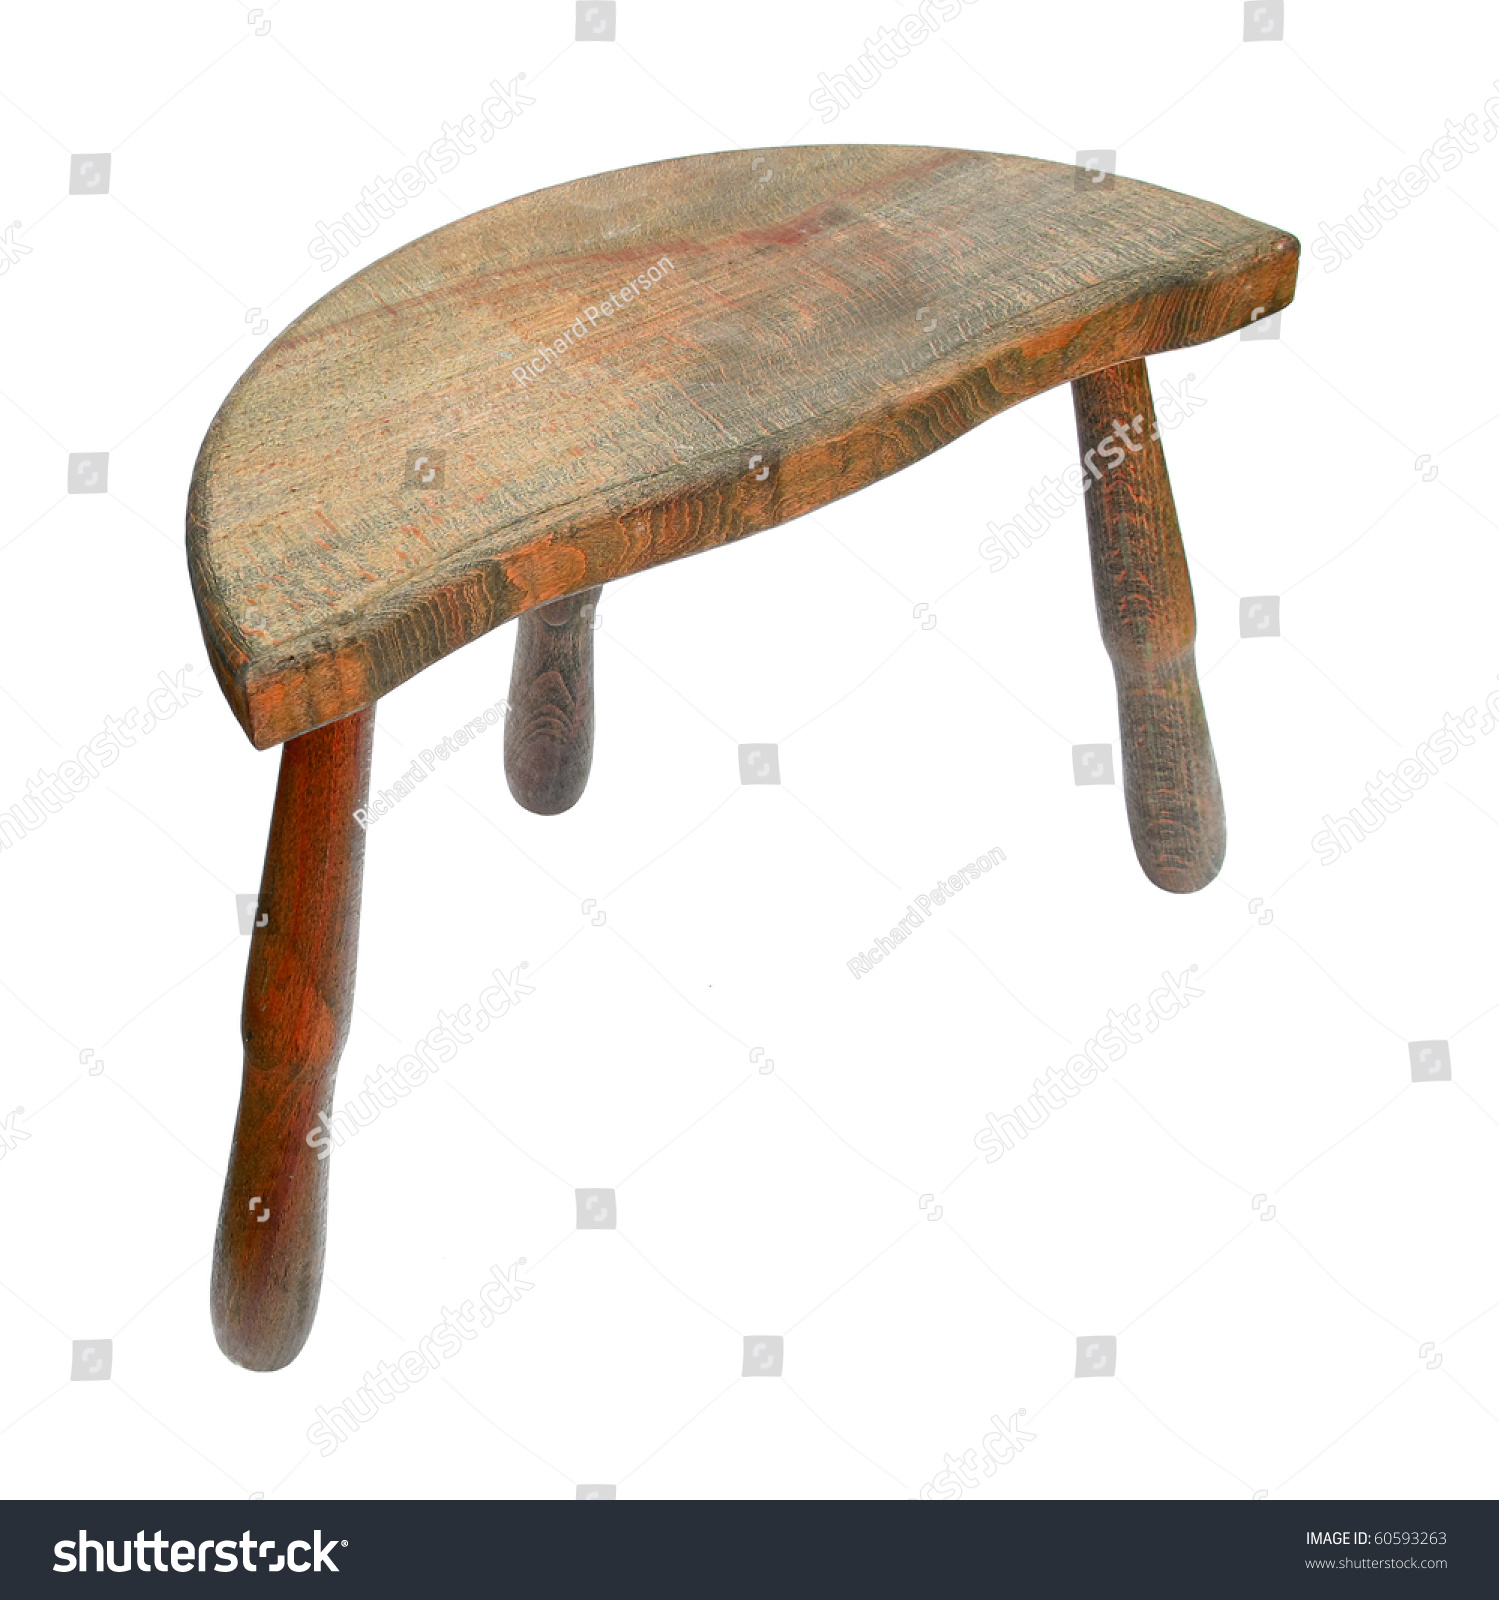 stool chair photography how to make a wing slipcover wooden with three legs stock photo 60593263